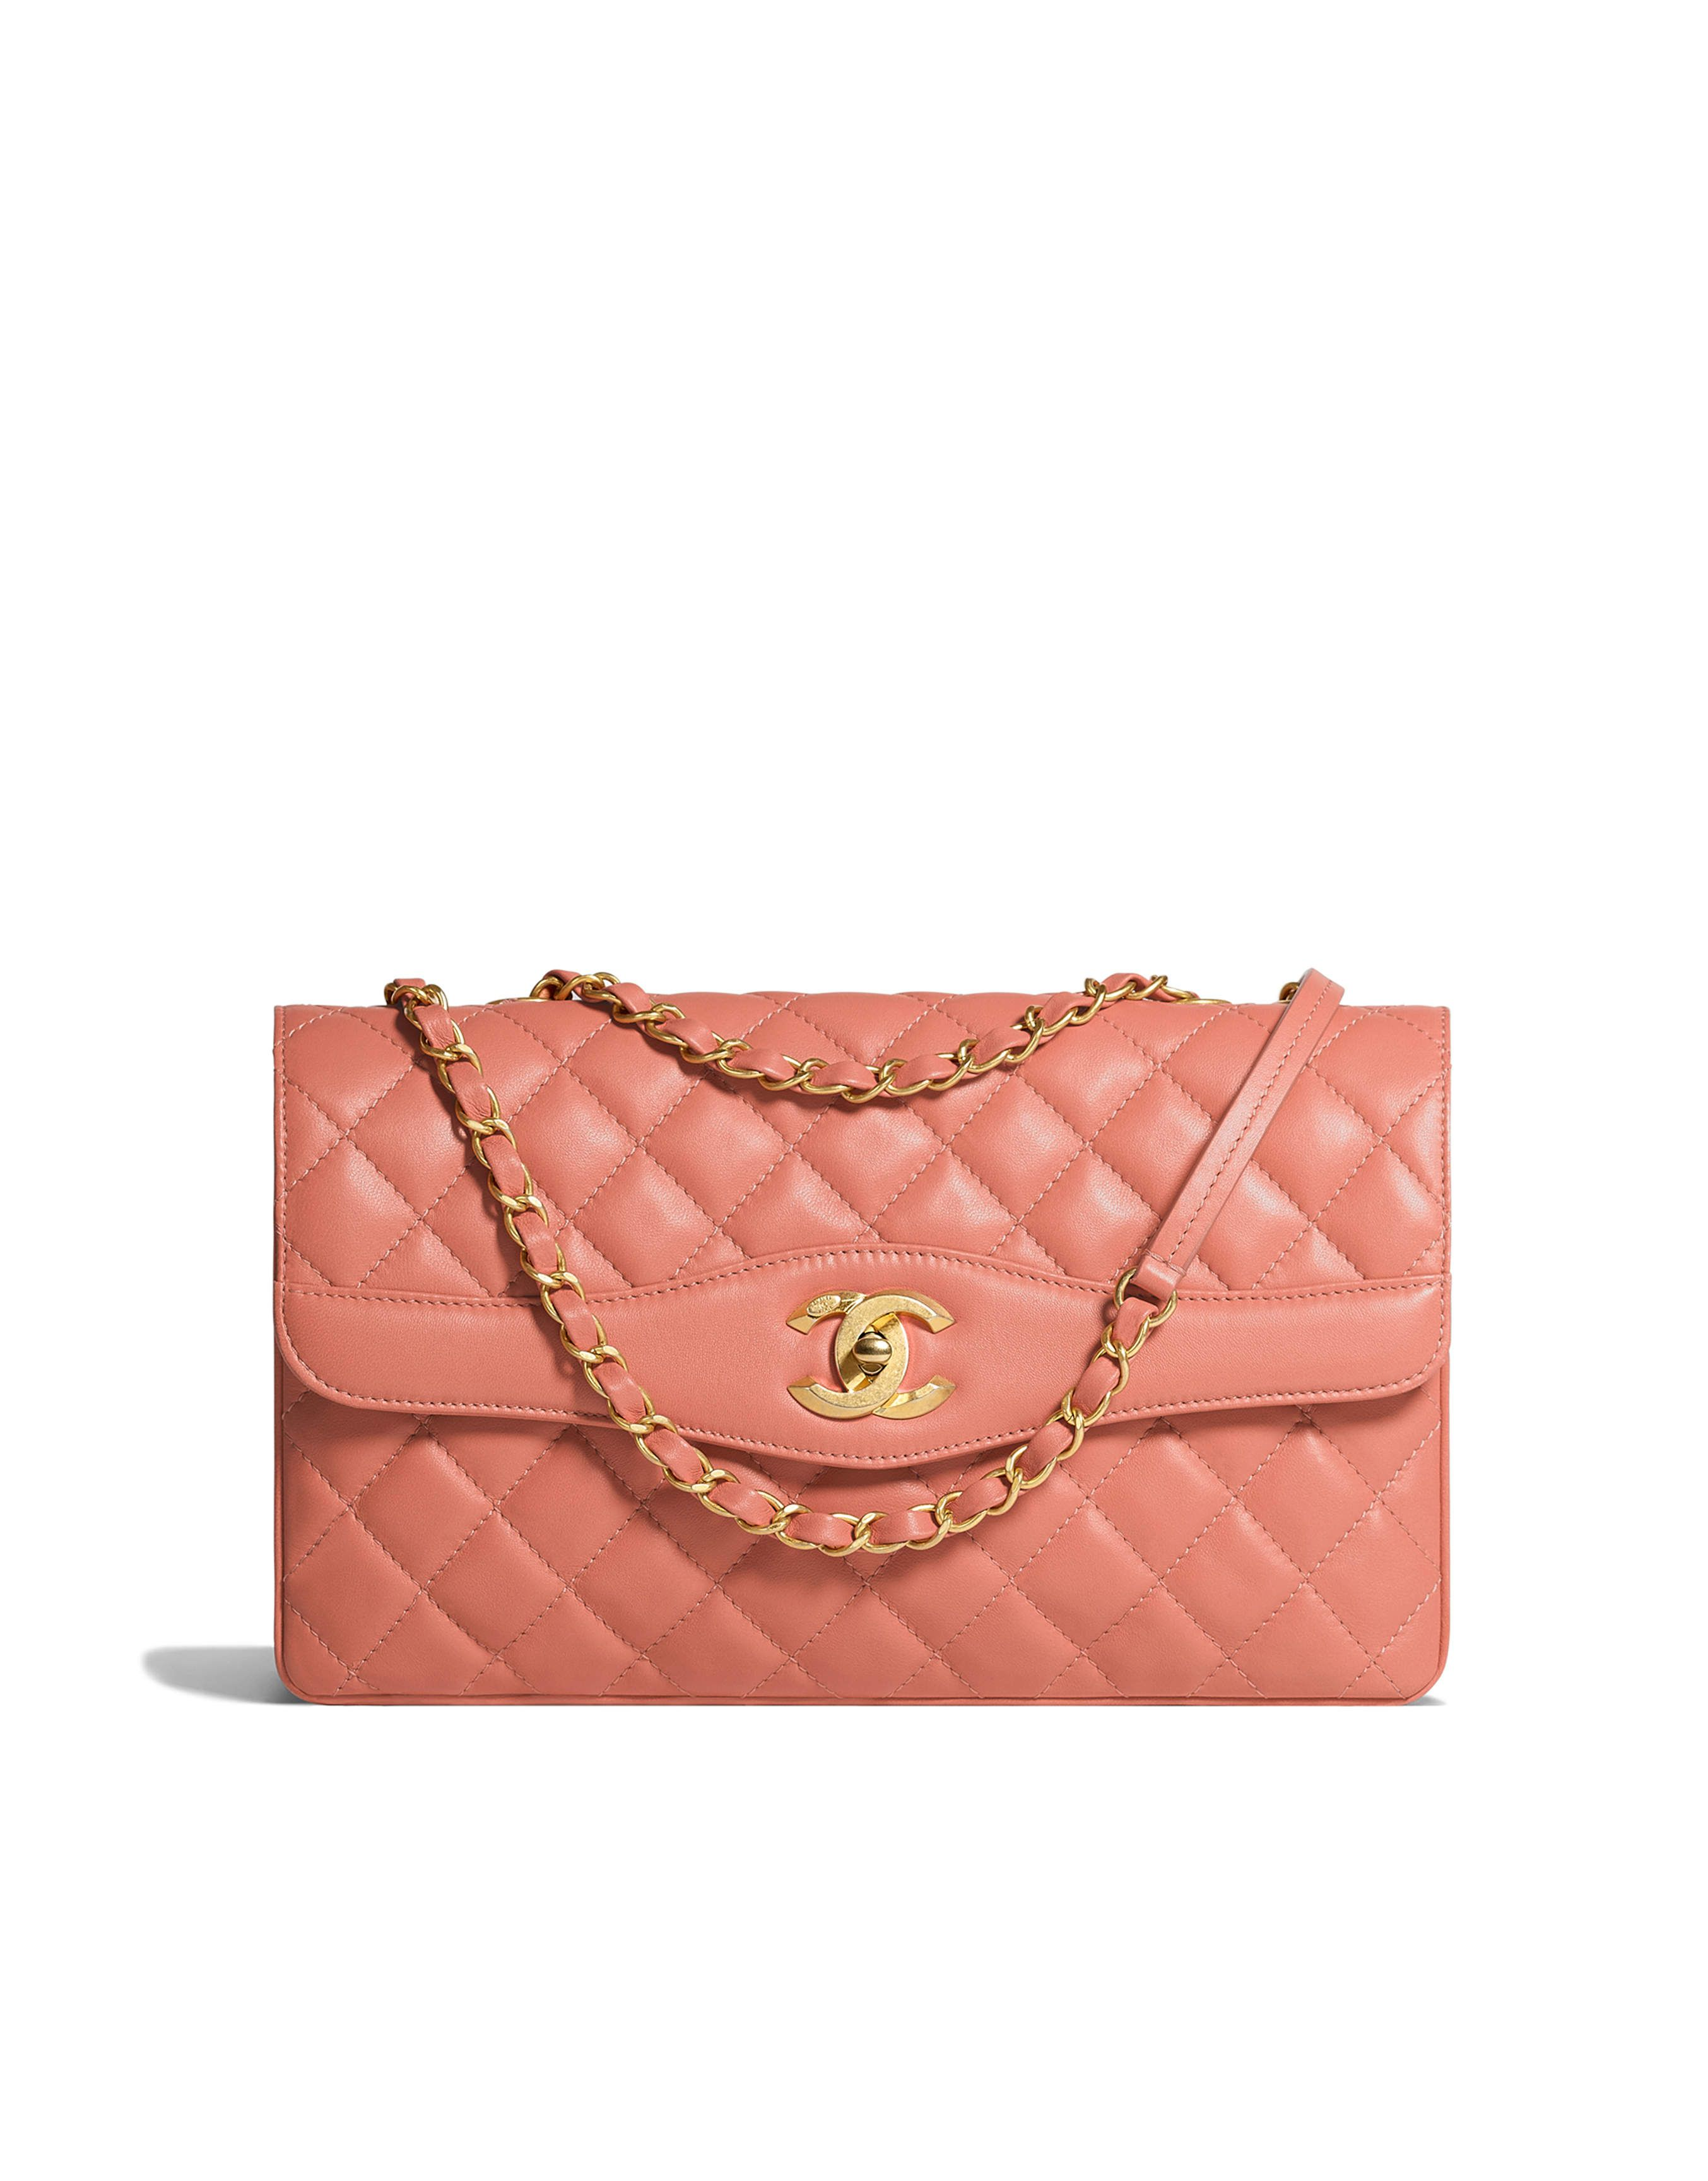 Chanel Large Coco Vintage Flap Bag Chanel 3 400 Chanel Bags